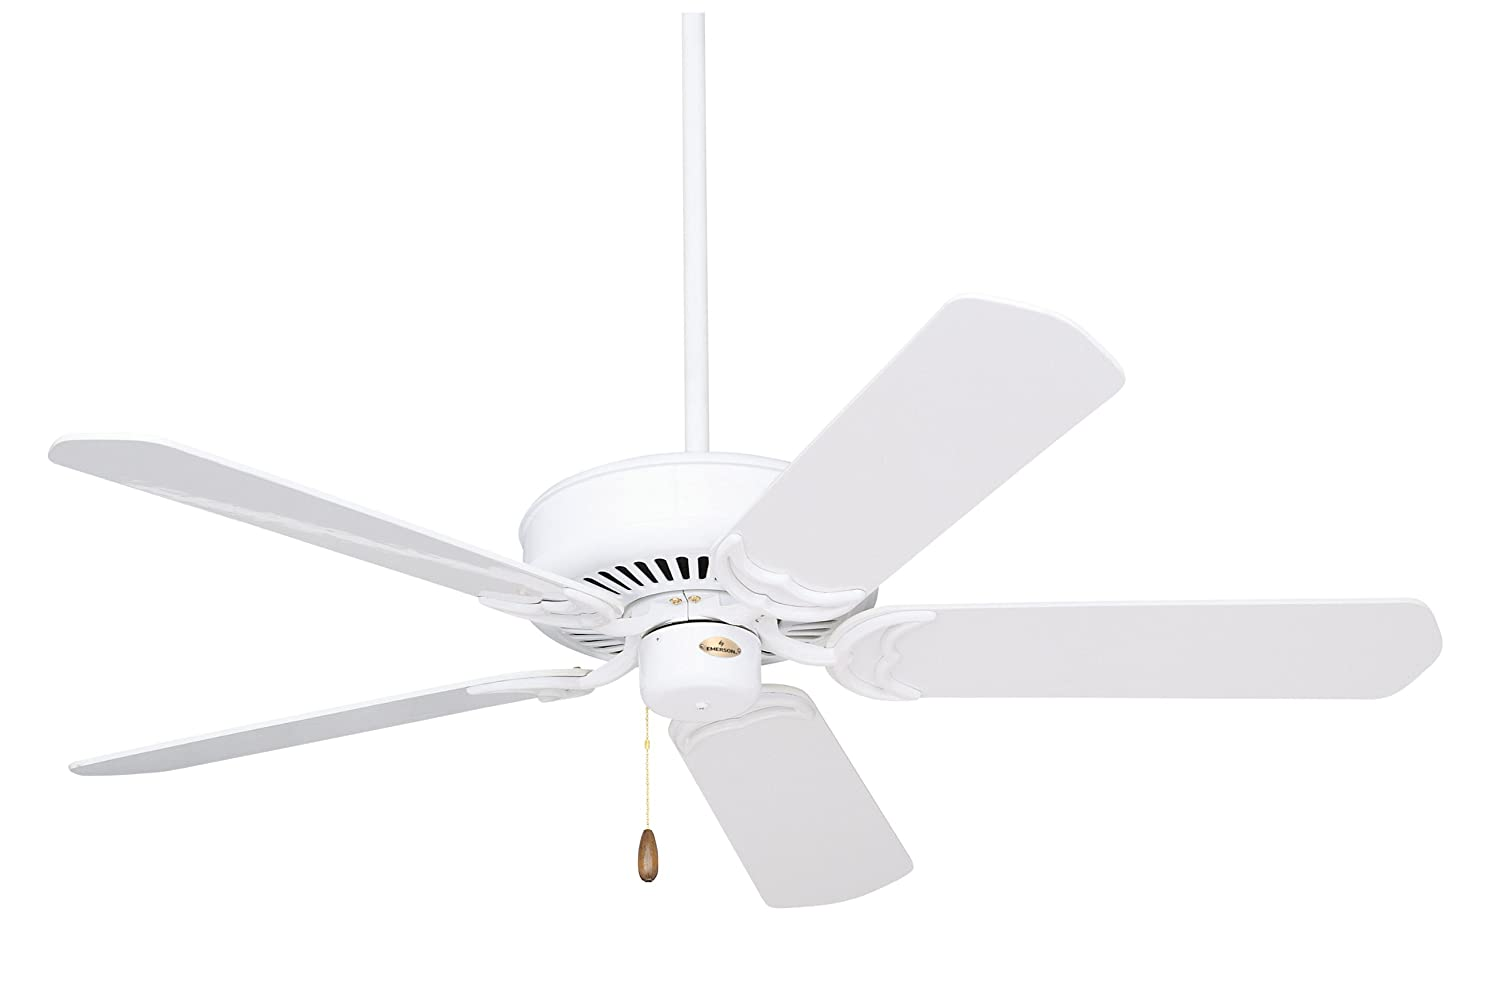 Emerson ceiling fans cf755ww designer 52 inch energy star ceiling emerson ceiling fans cf755ww designer 52 inch energy star ceiling fan light kit adaptable appliance white finish amazon aloadofball Choice Image